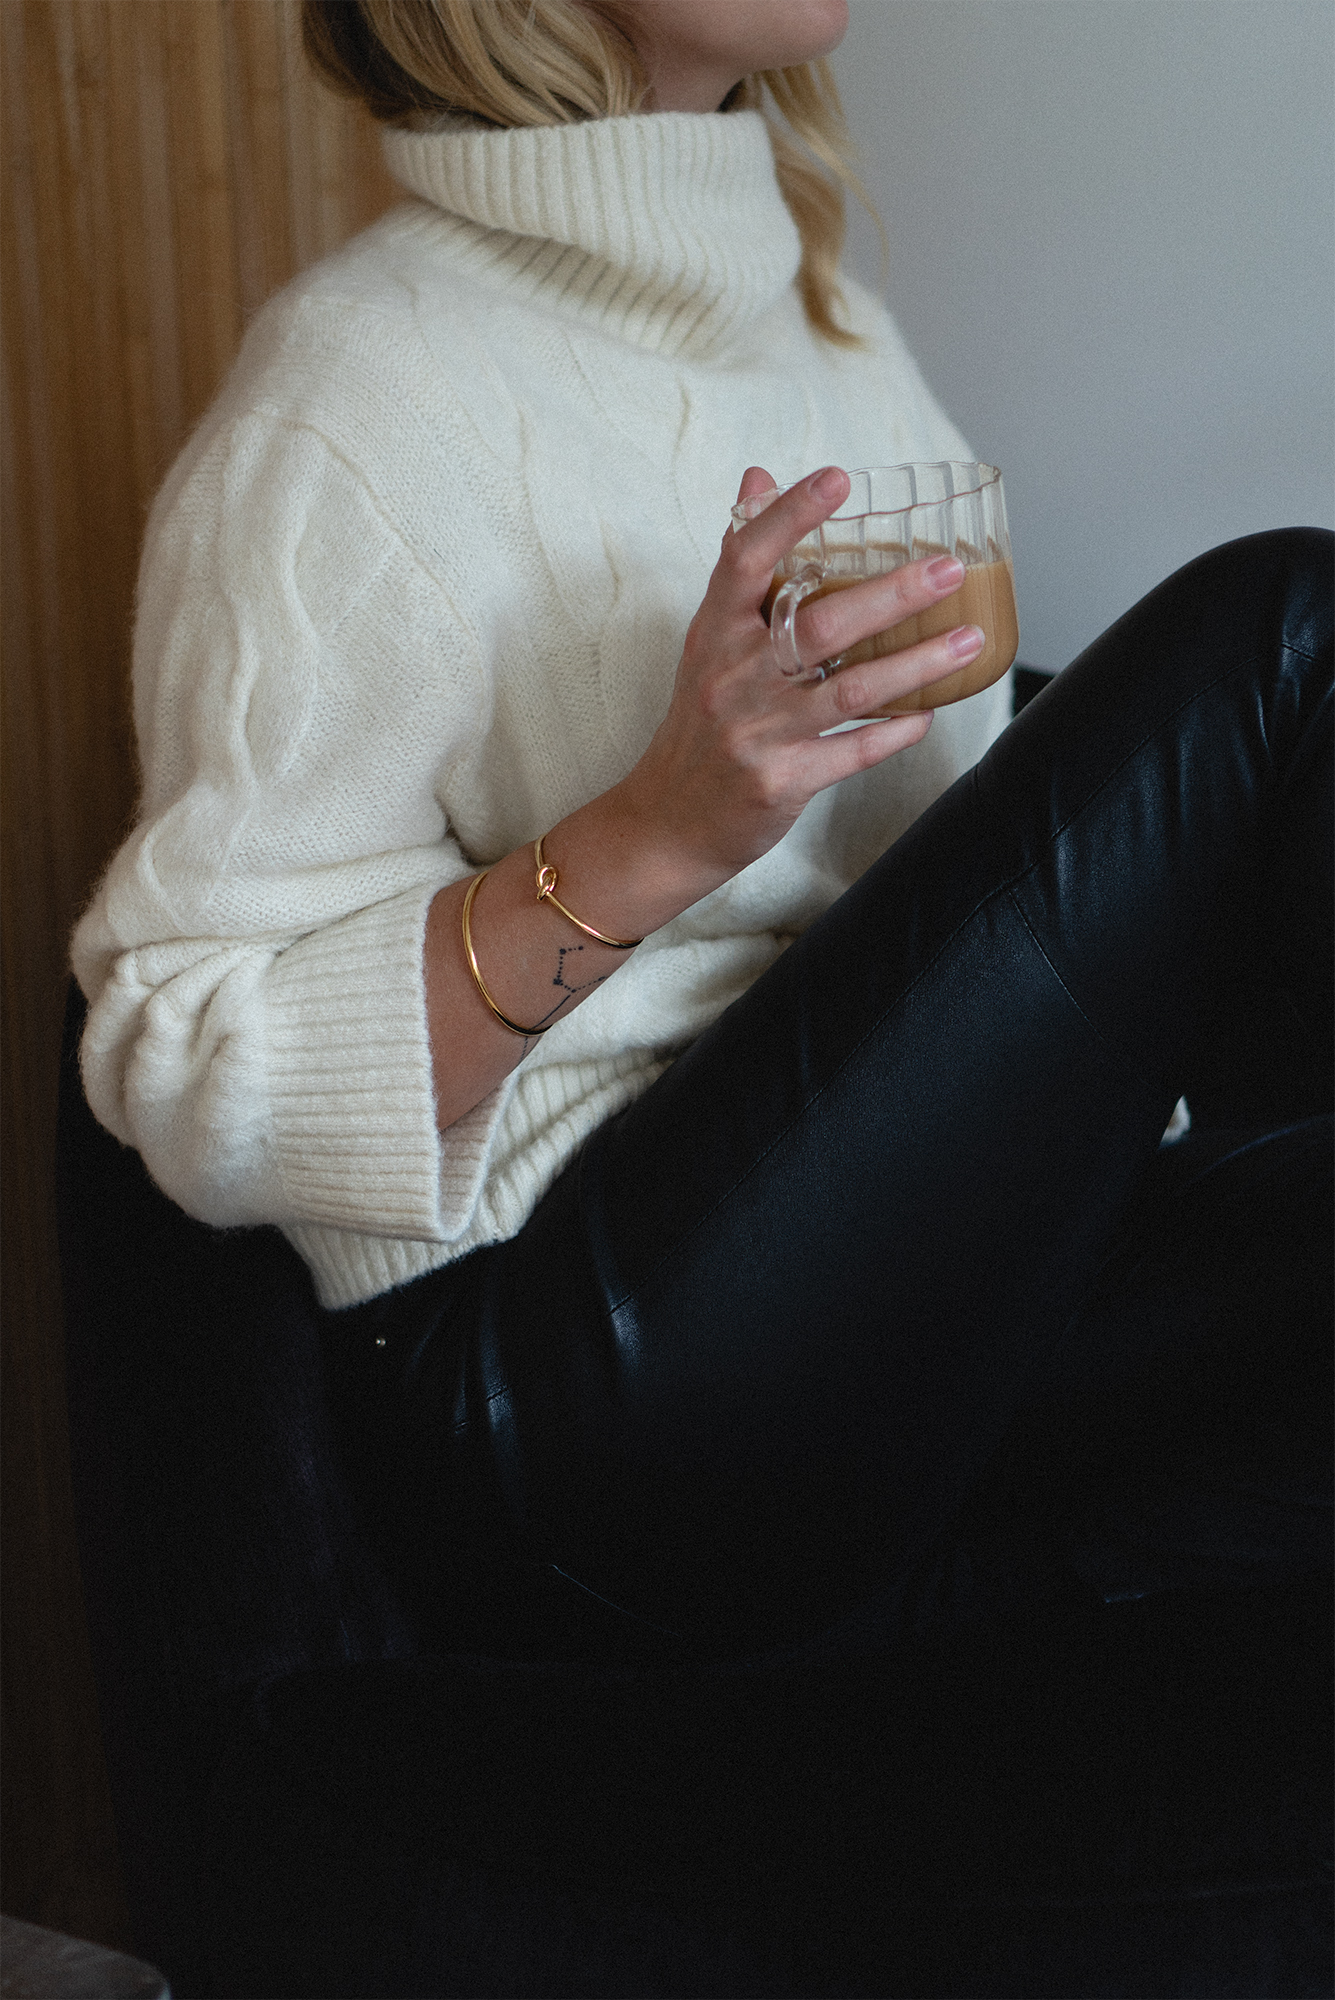 cream chuky cable knit jumper, glass tea cup, leather trousers, cosy winter outfit